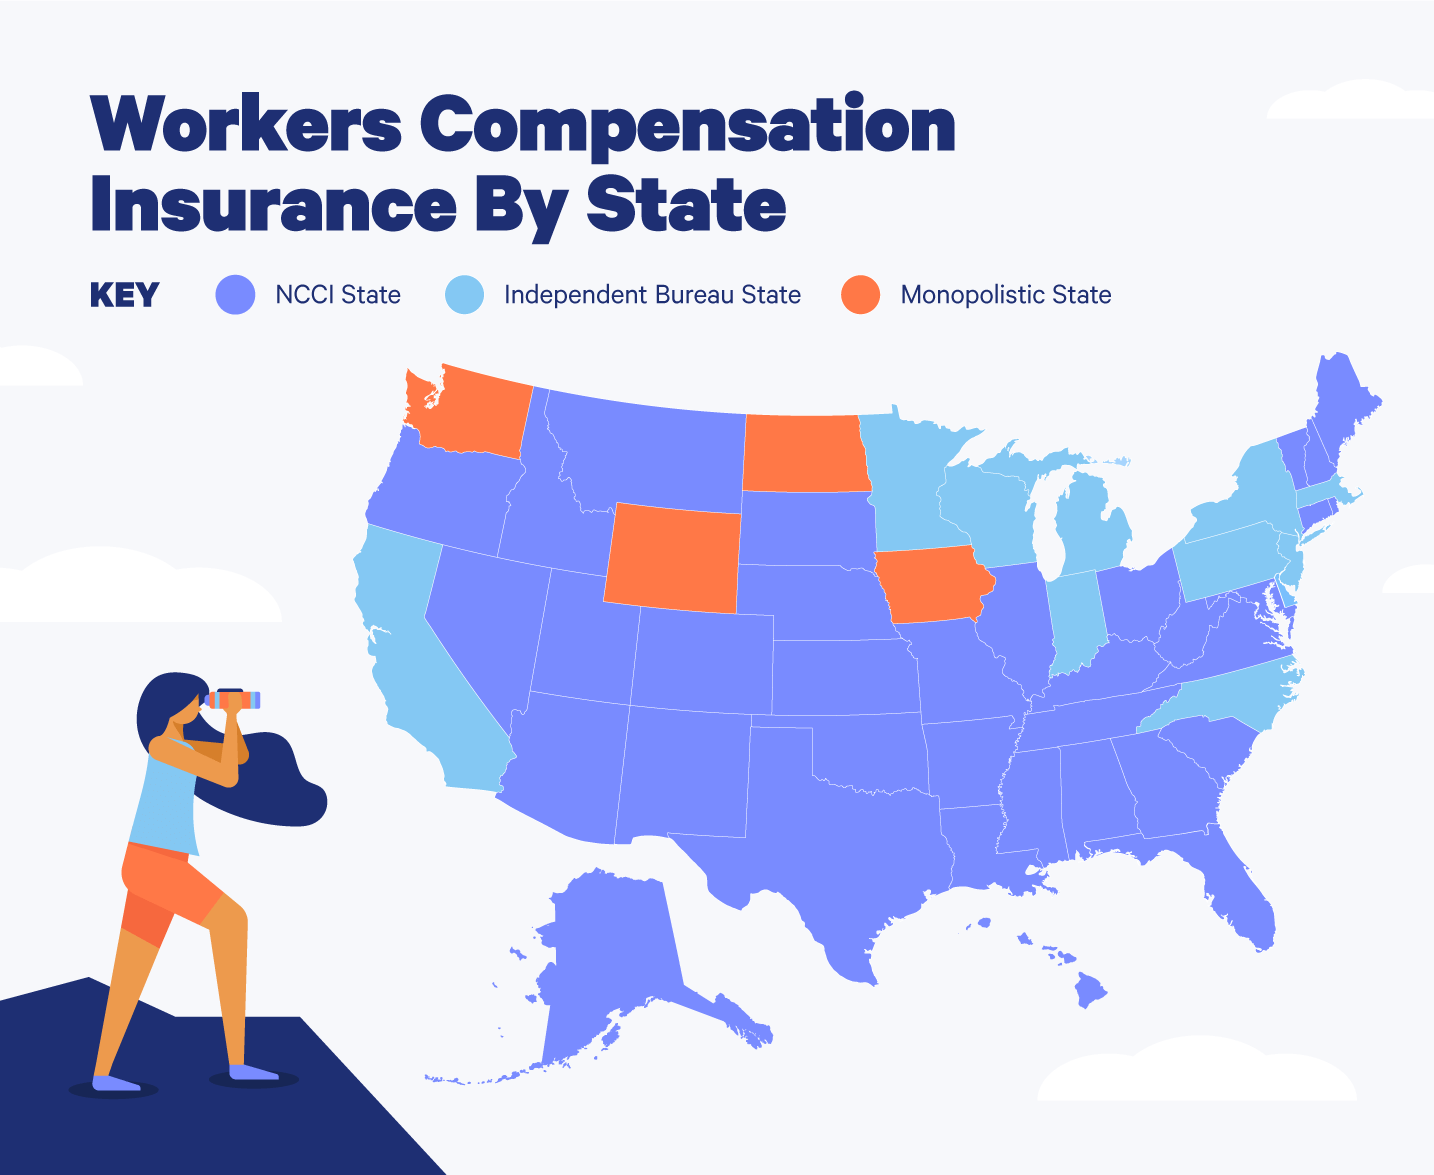 workers compensation insurance by state